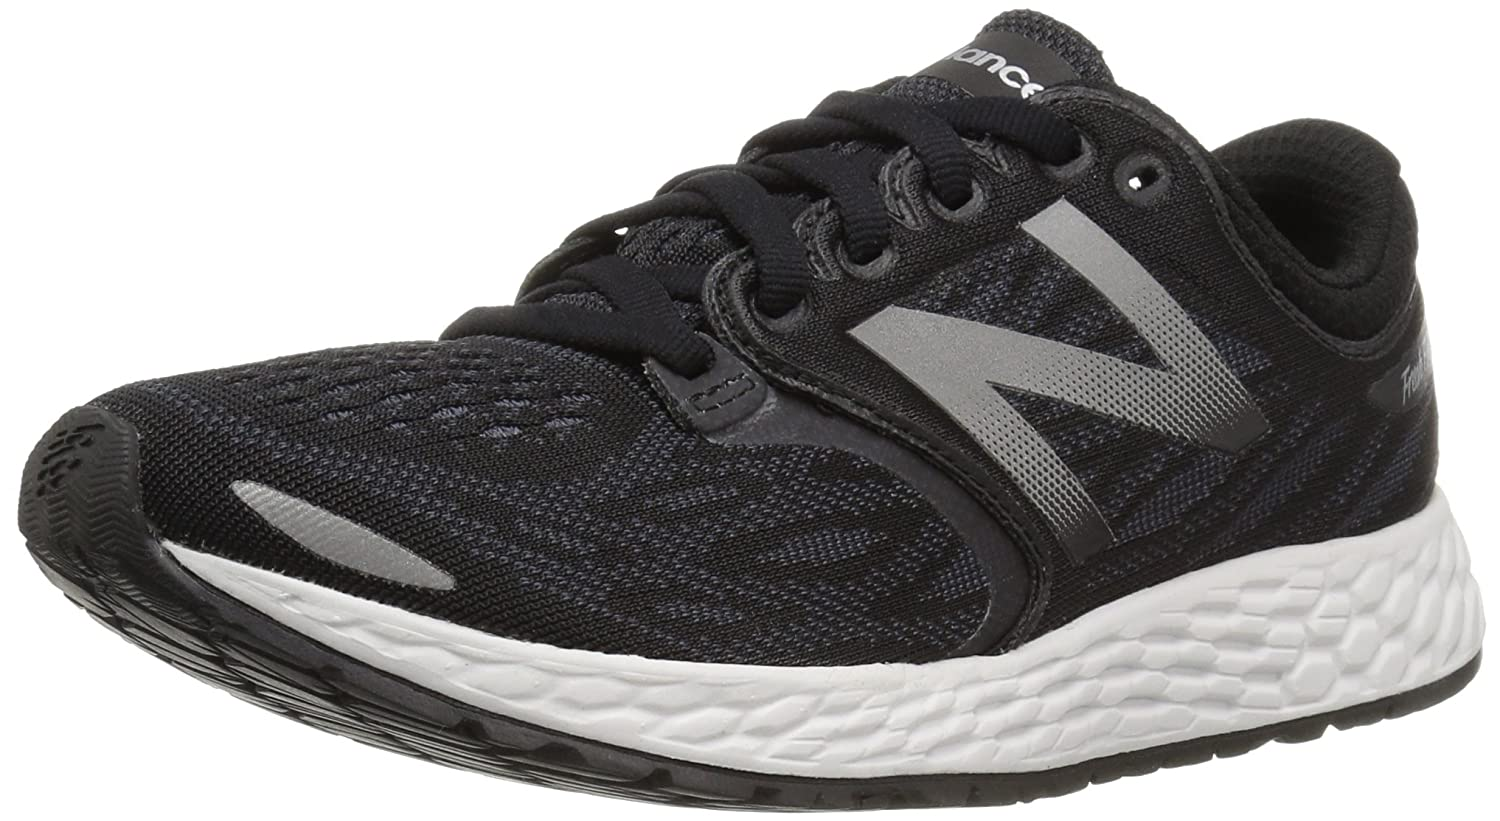 ee6ef83643a36 New Balance Women's Fresh Foam Zante V3 Running Shoe: Amazon.co.uk ...